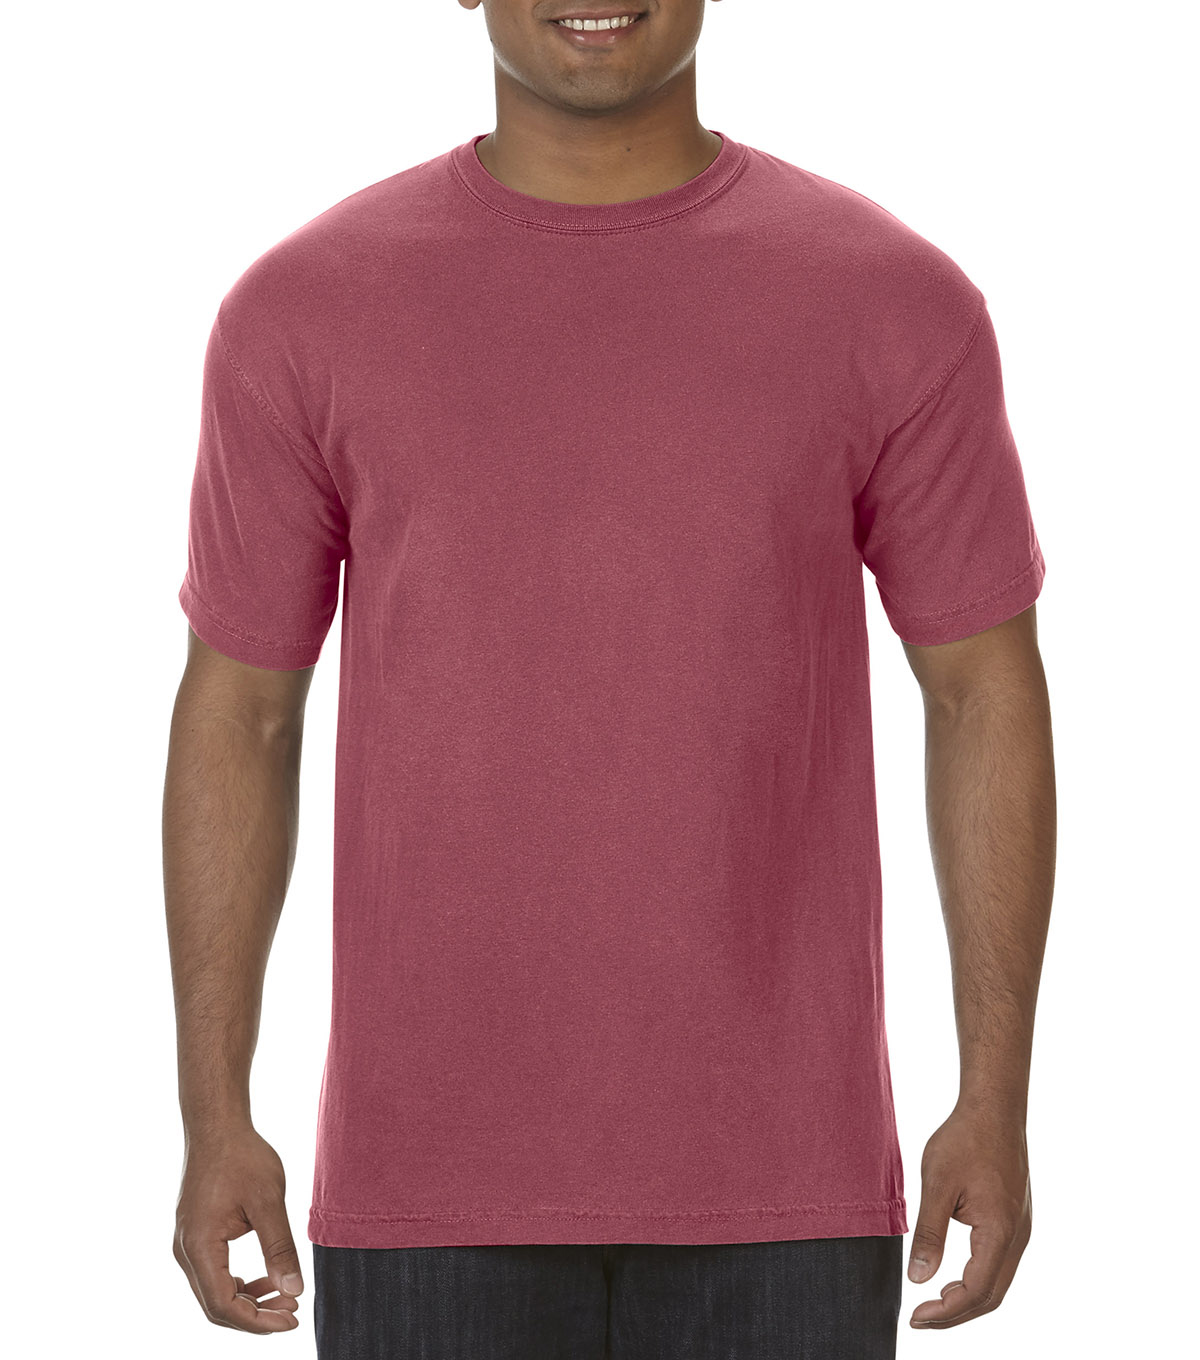 Adult Comfort Colors T-shirt-Medium, Crimson